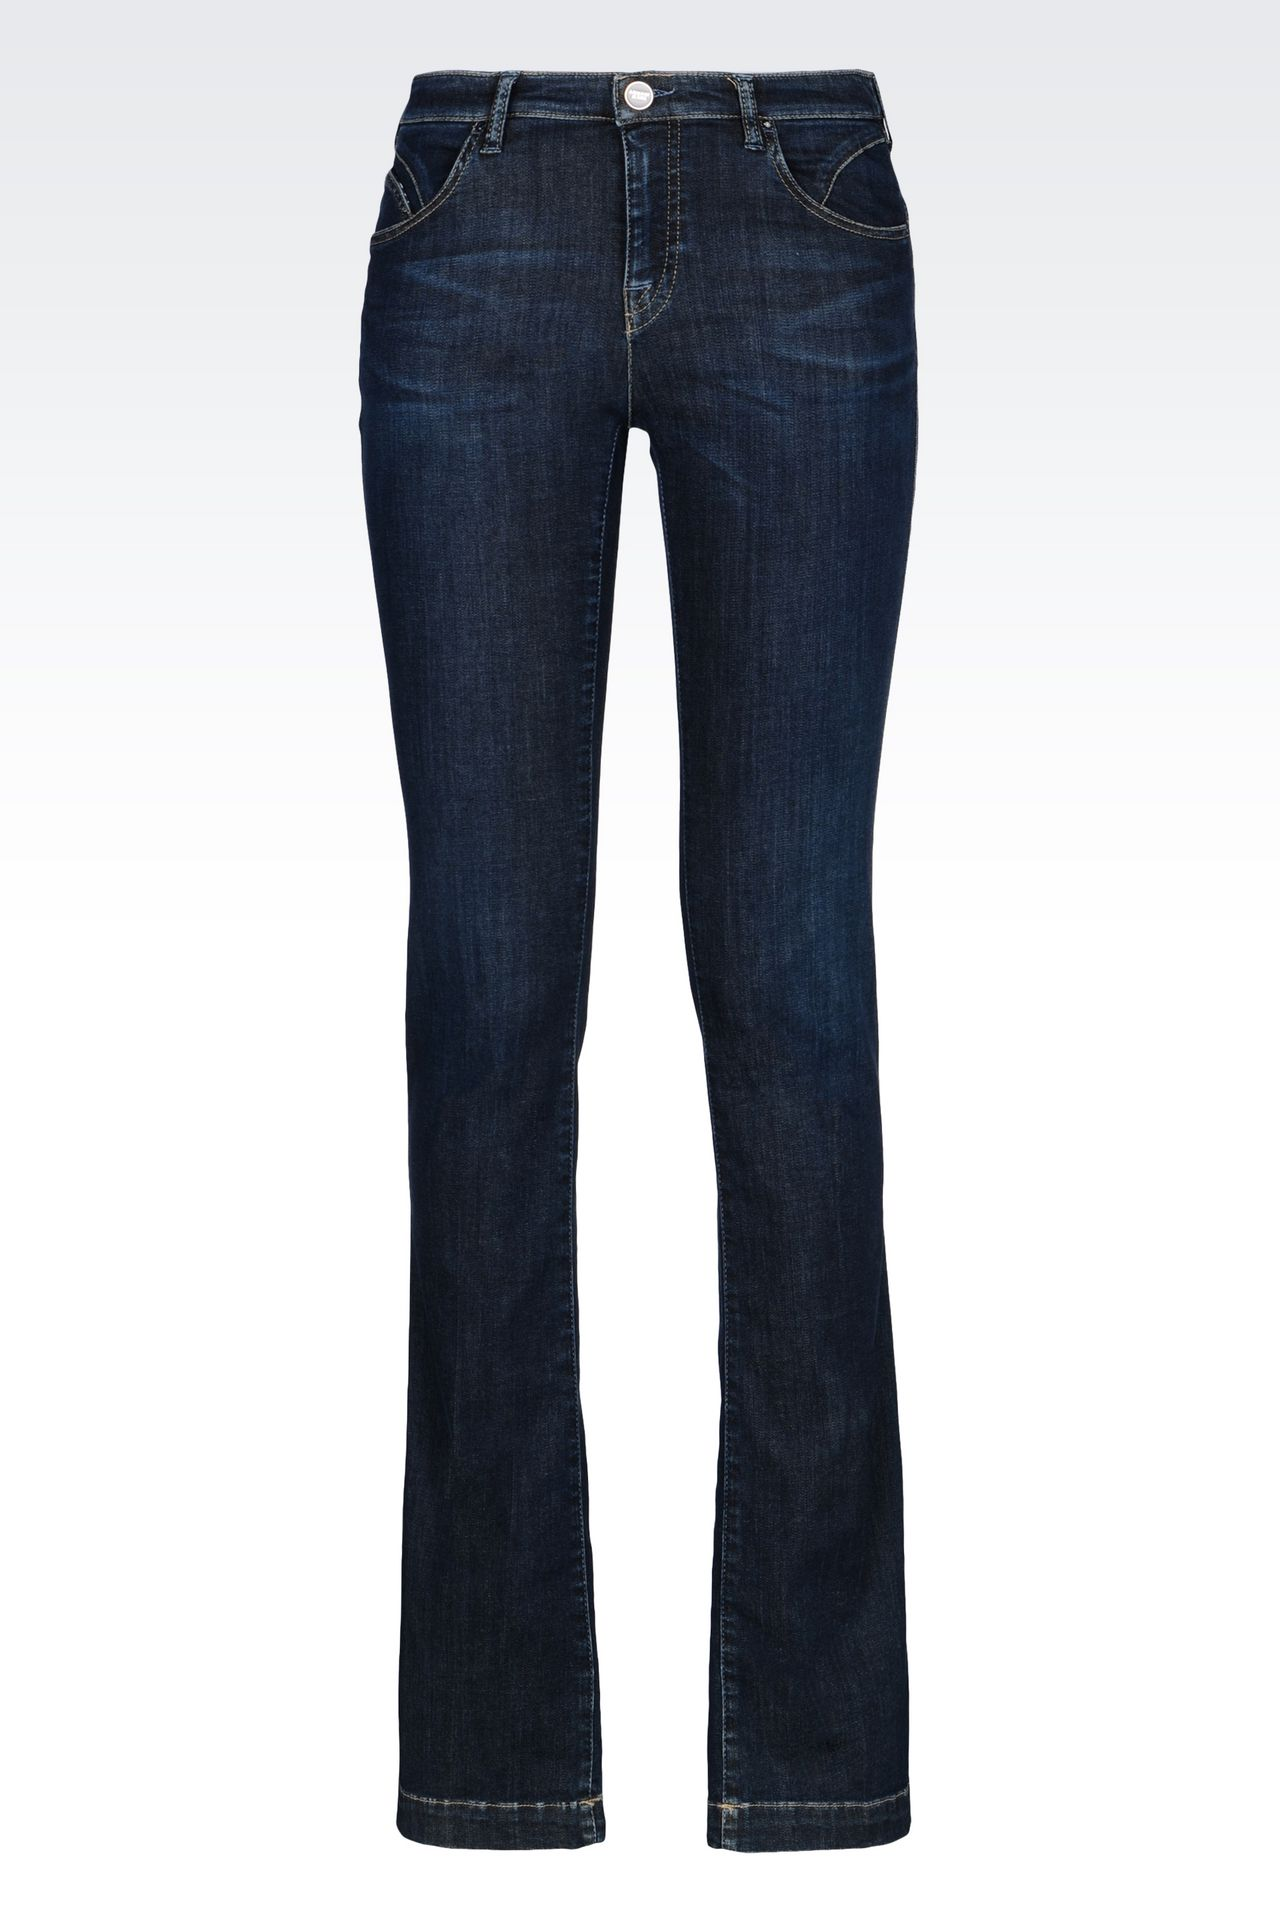 REGULAR FIT DARK WASH JEANS: Jeans Women by Armani - 0